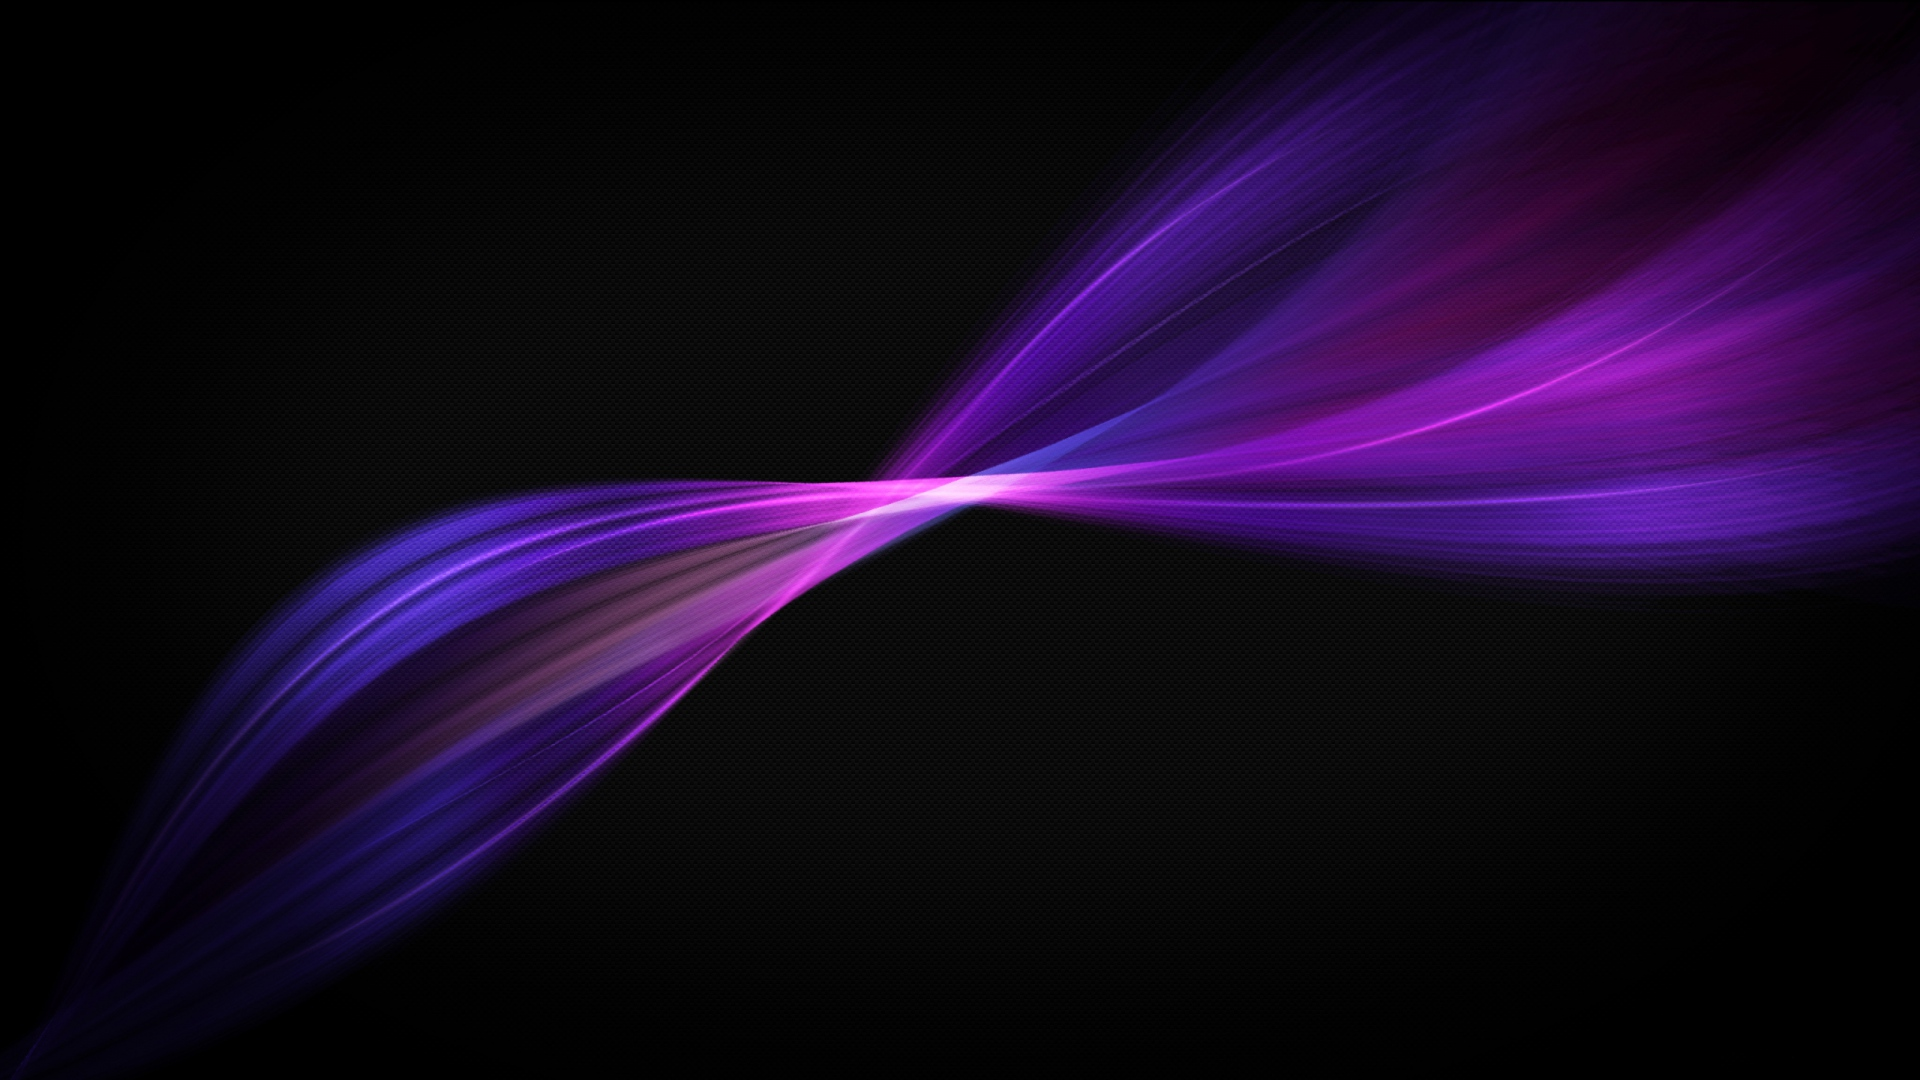 Xperia Style Black Background With Purple